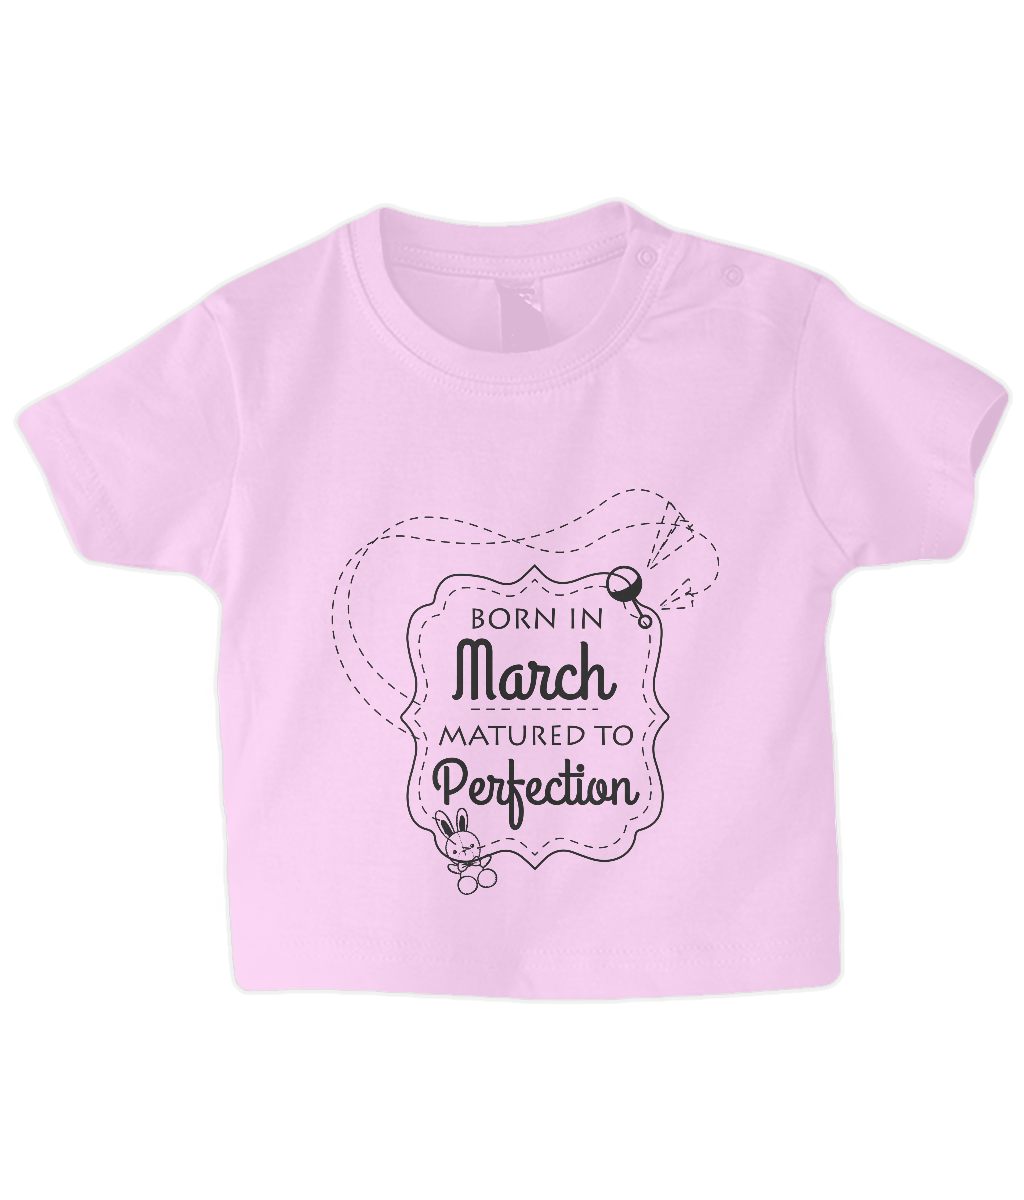 Nappytastic Baby/Toddler T-Shirt Born In March